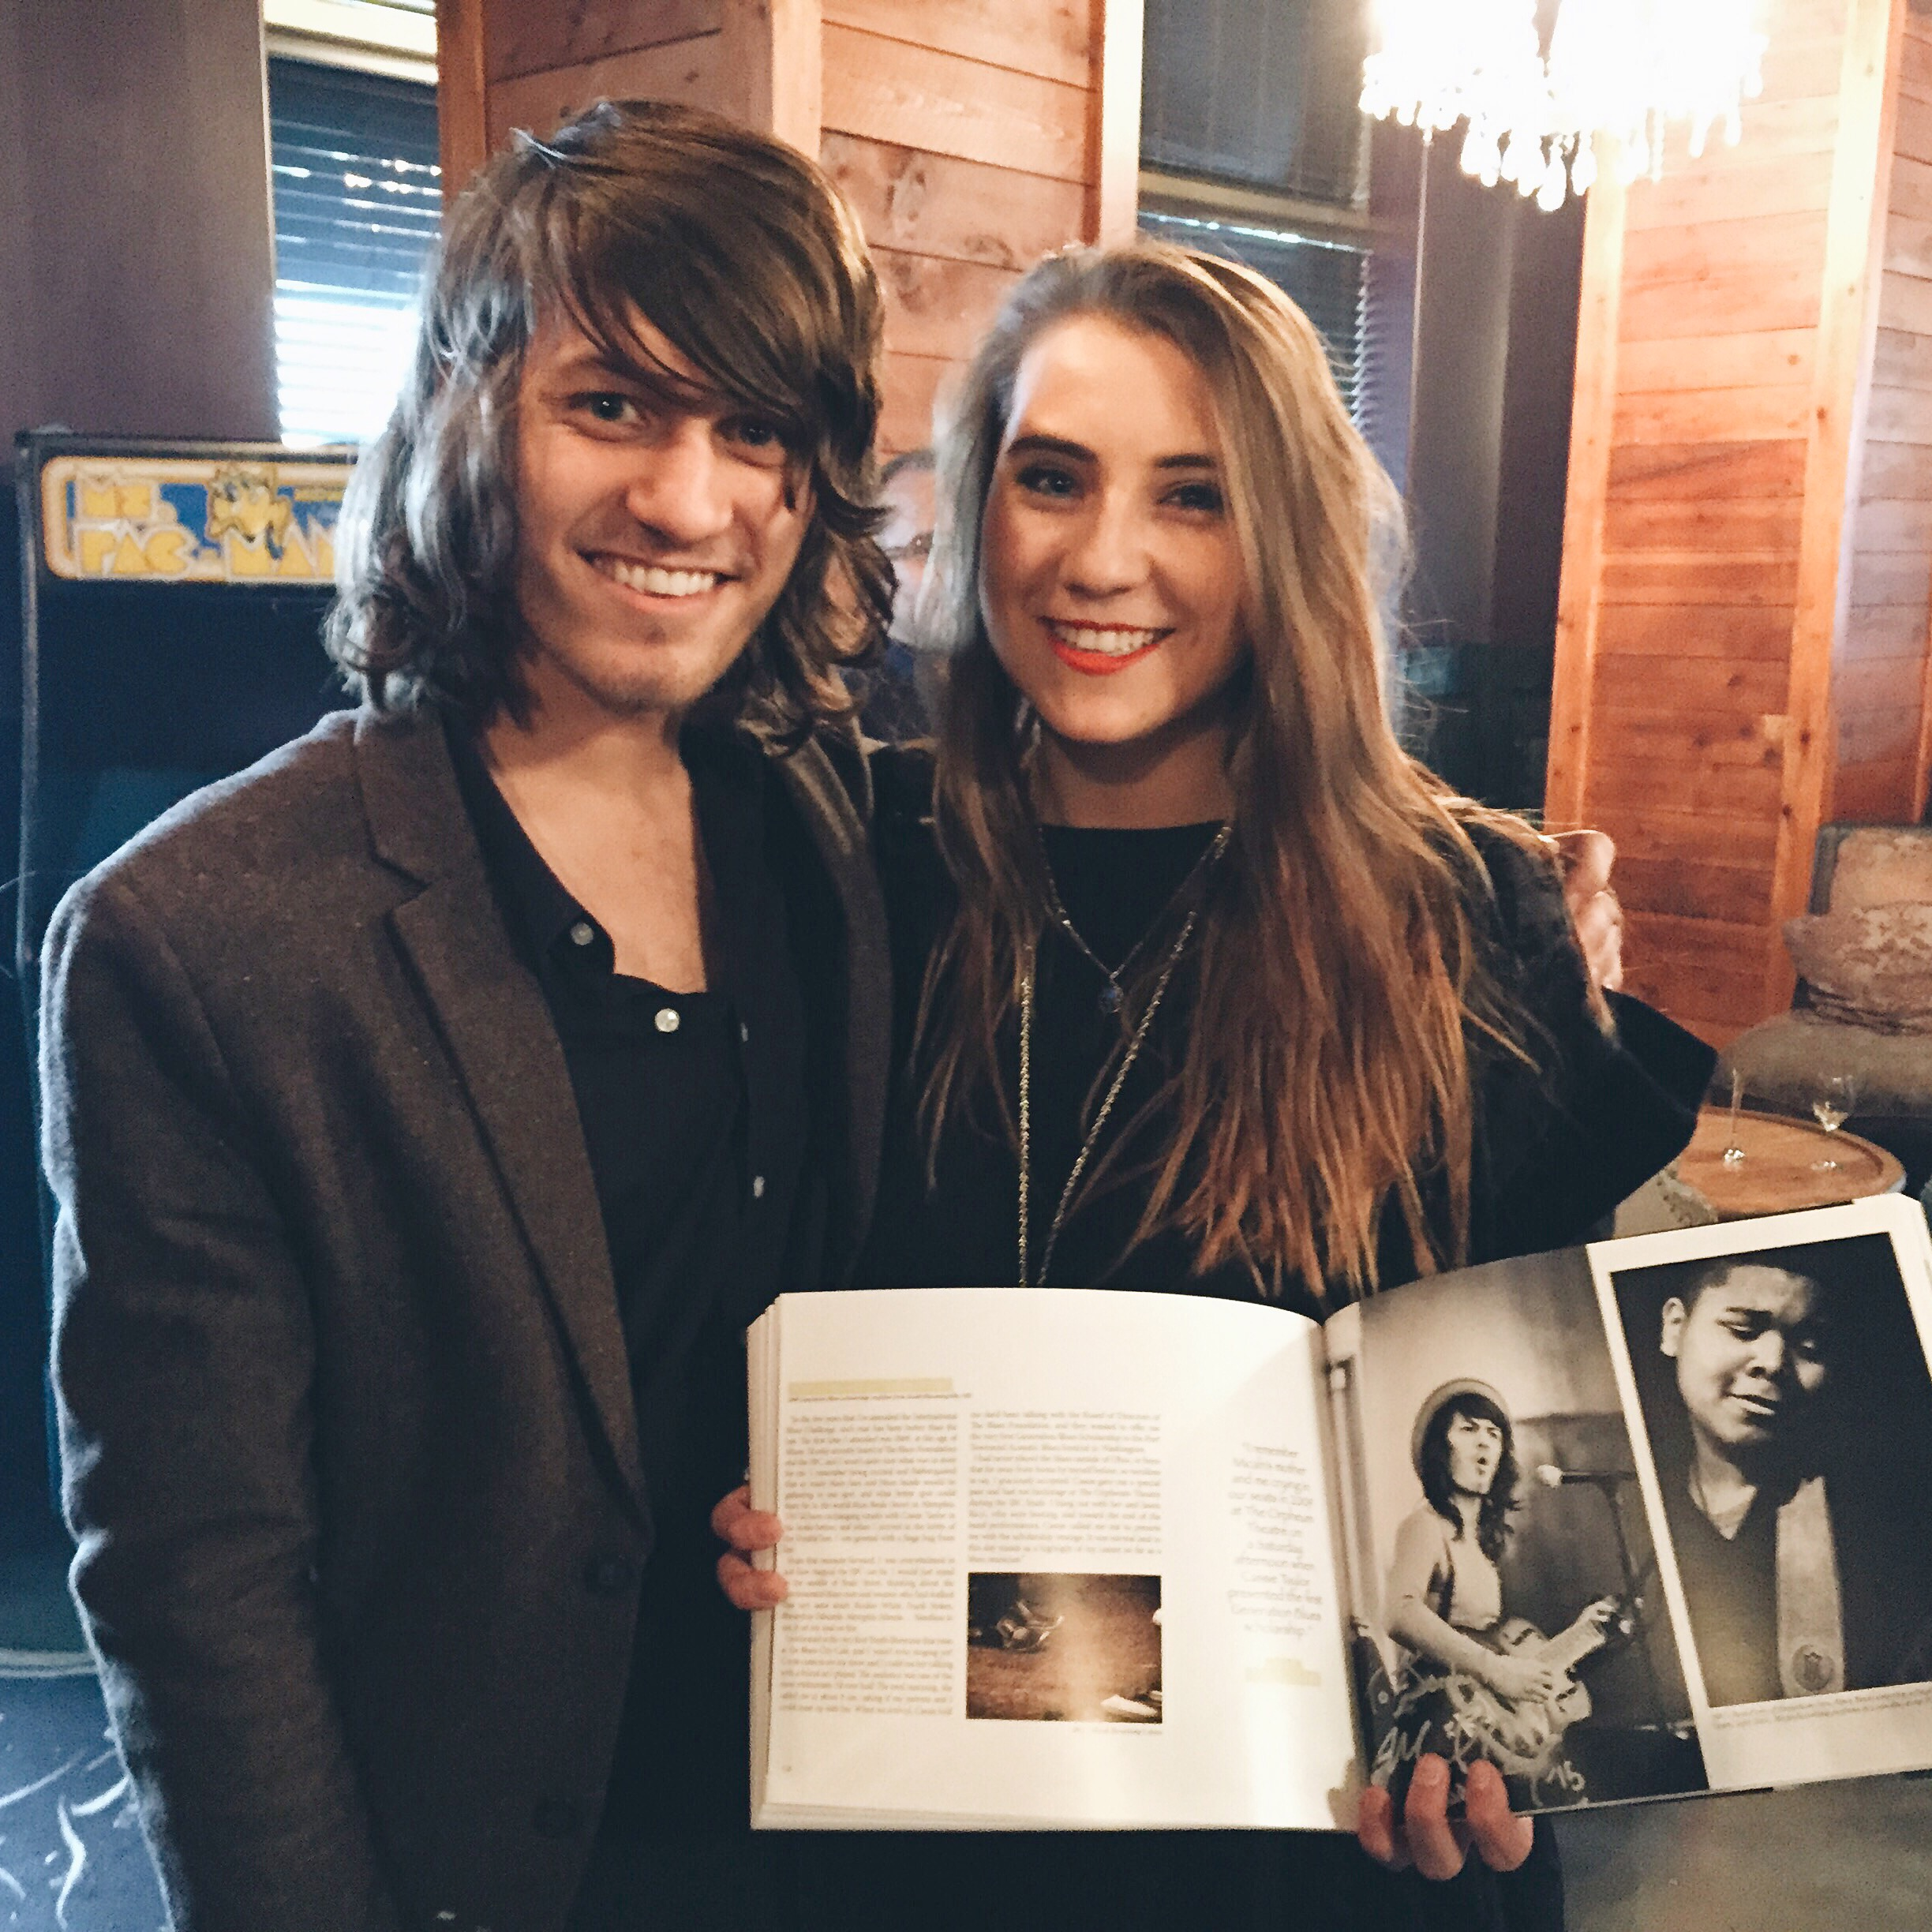 """Fangirling over  Micah Kesselring , my new friend & the nicest 21 year old blues artist you will meet. You can download his new album """"Log Cabin Blues"""" at   micahkesselring .bandcamp.com"""